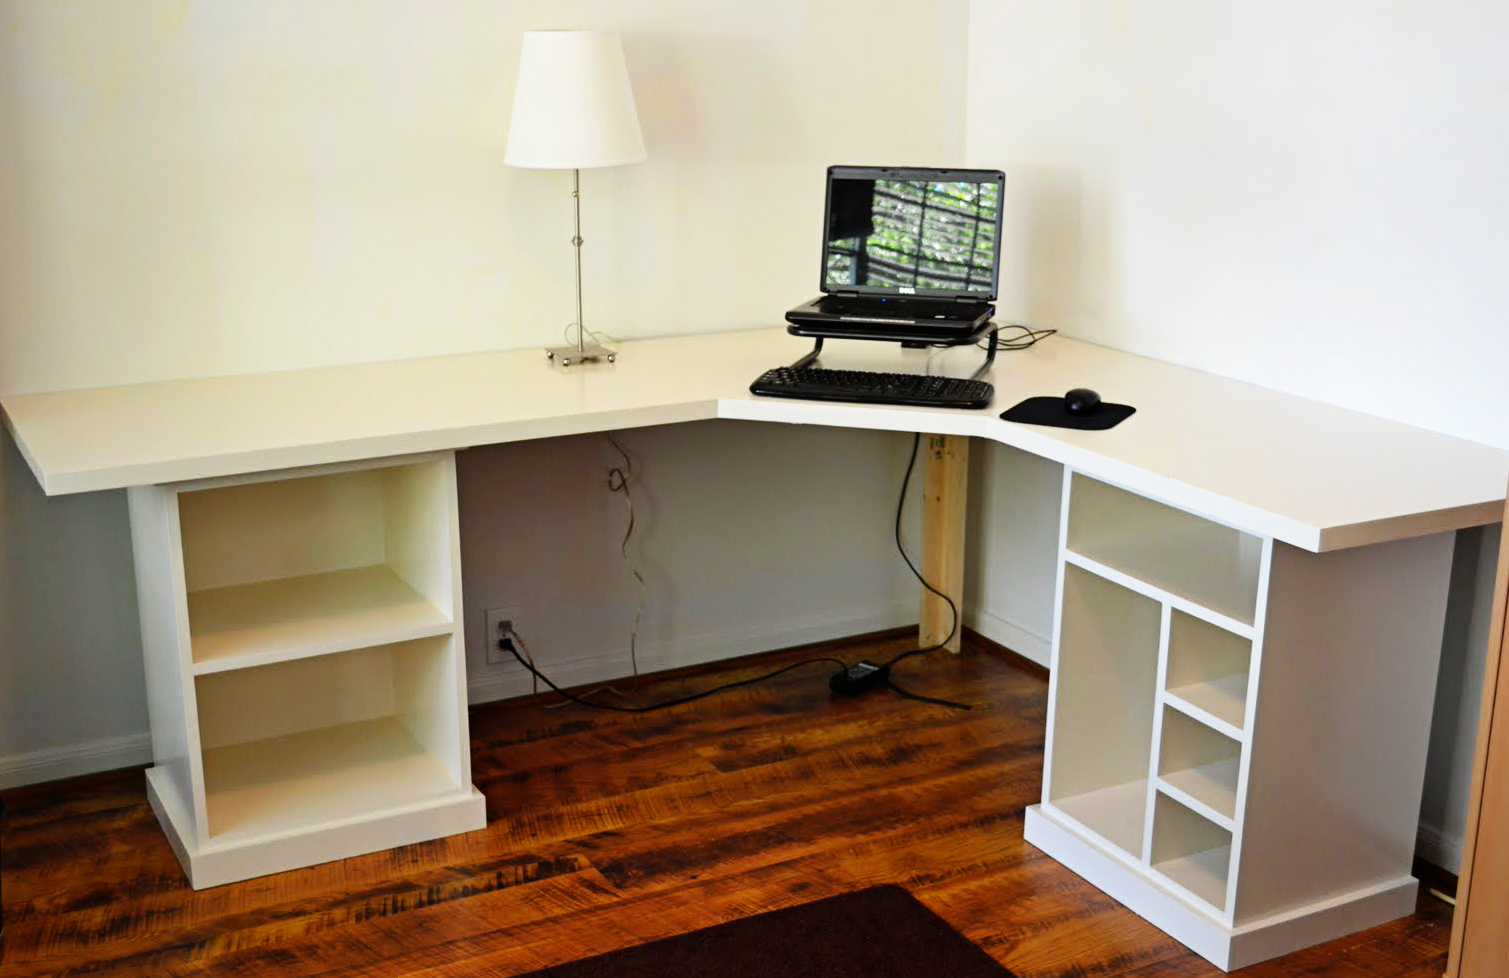 Office Desk Diy: How To Transform A Busy Office Into The Adorable One With